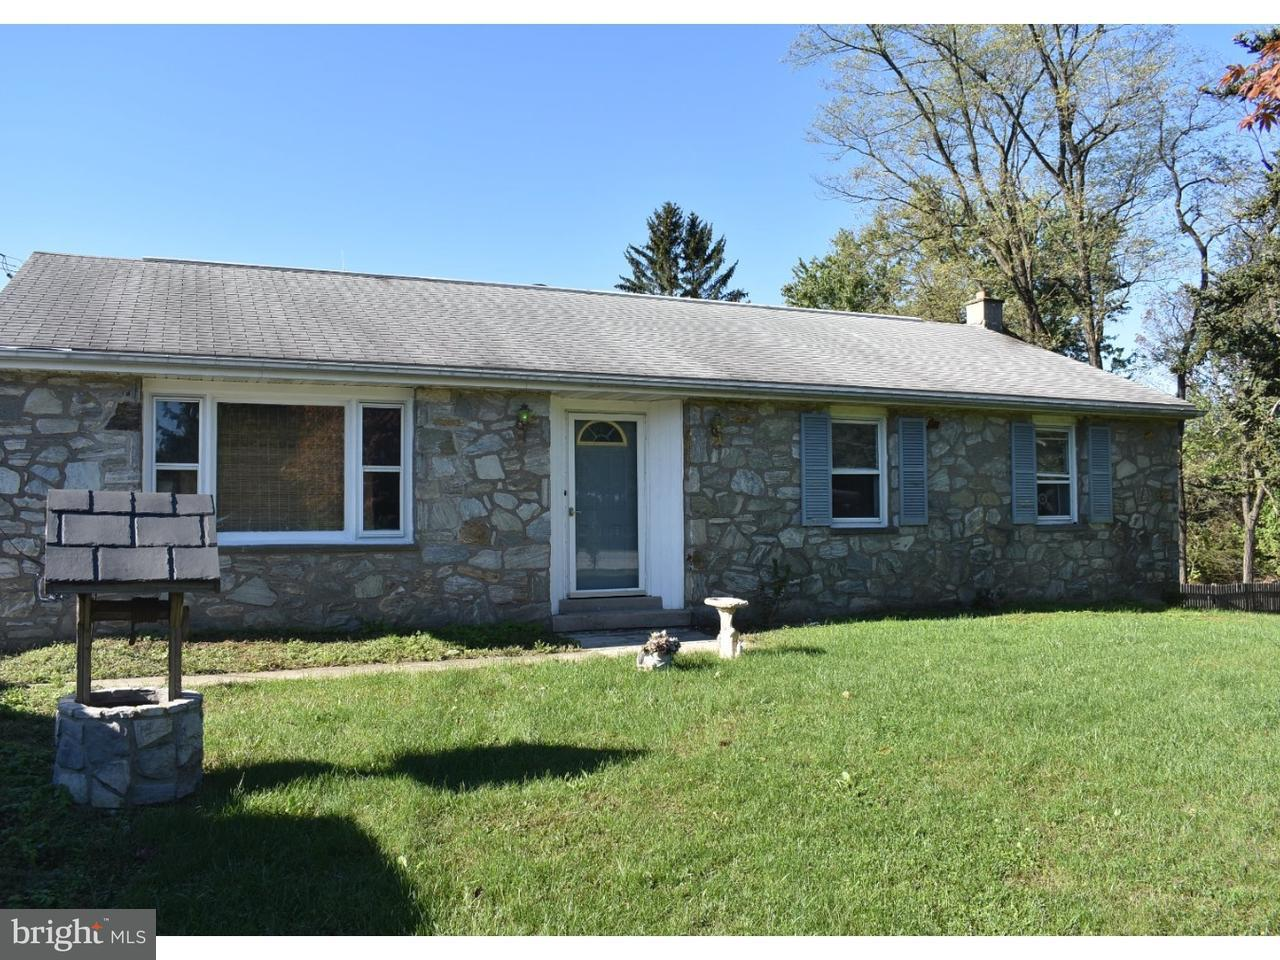 Single Family Home for Sale at 603 GAP NEWPORT PIKE Atglen, Pennsylvania 19310 United States